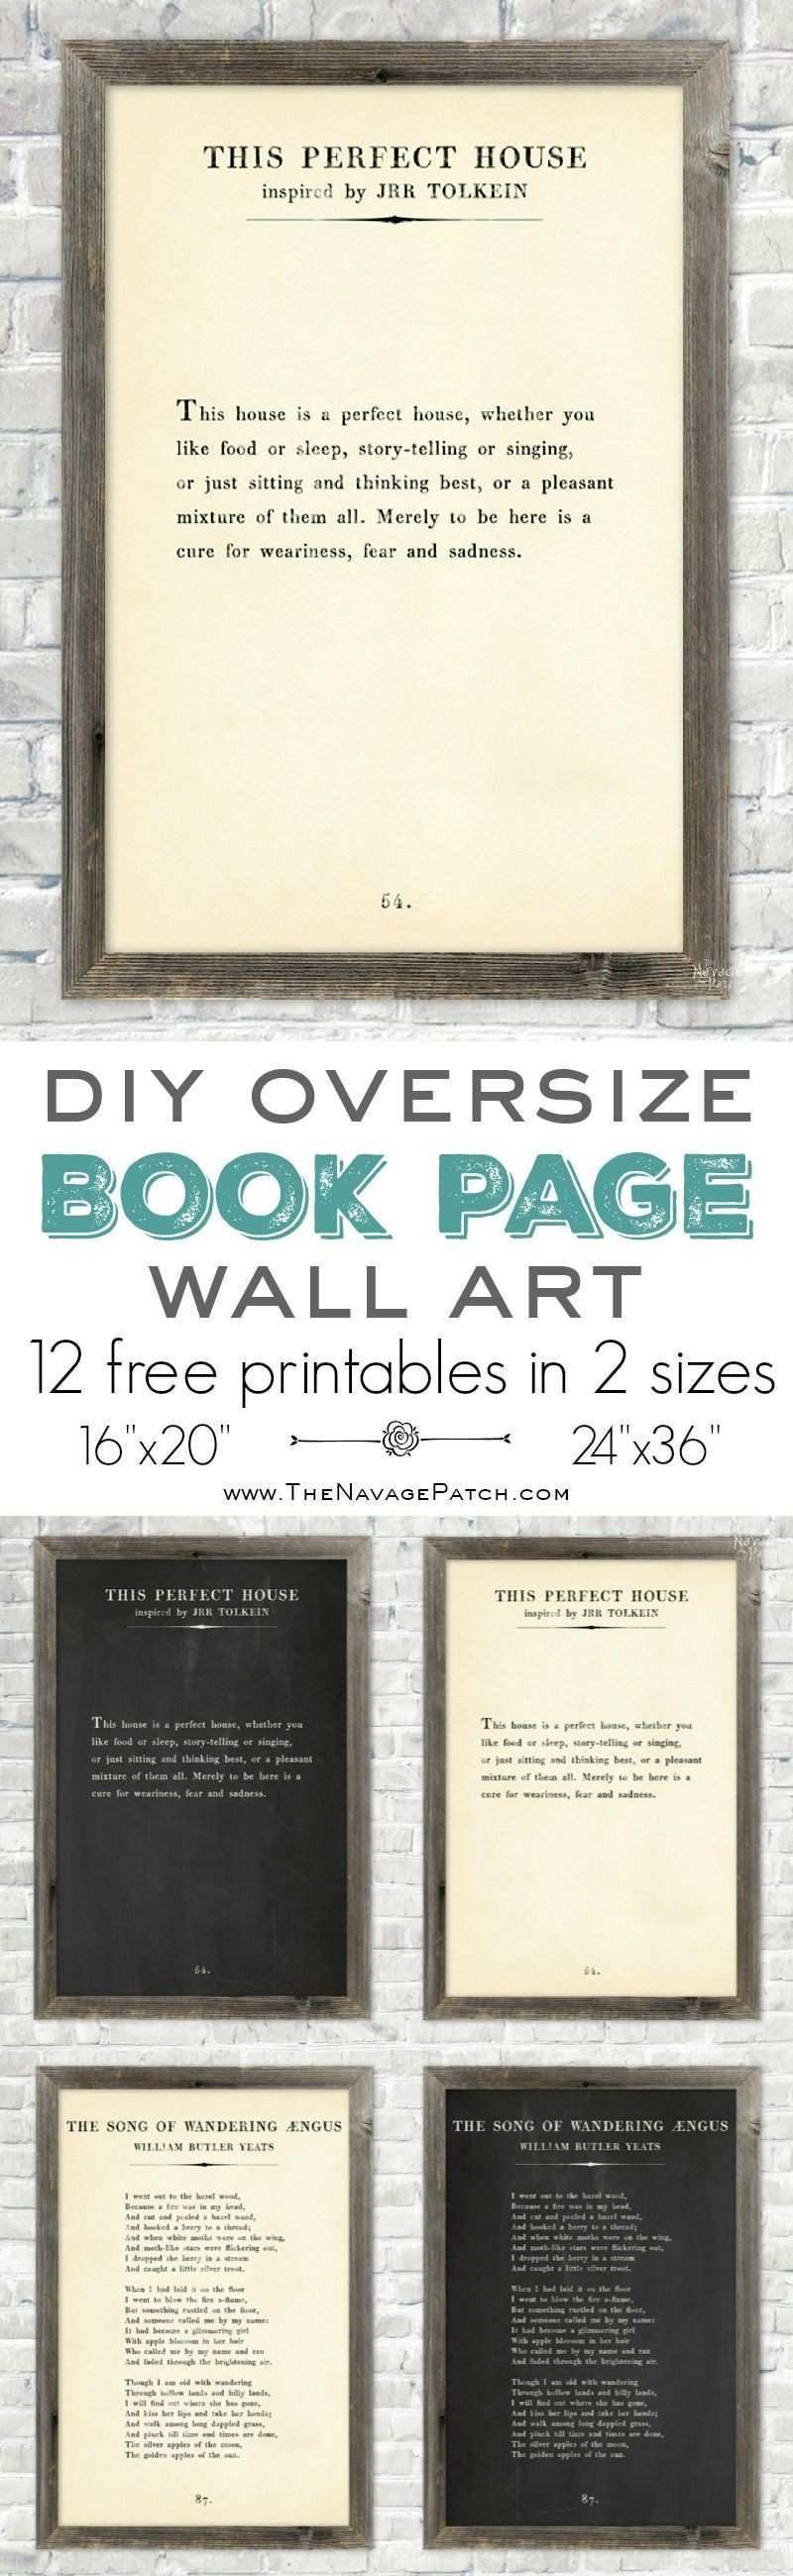 DIY Oversize Book Page Wall Art and 12 Free Printables The